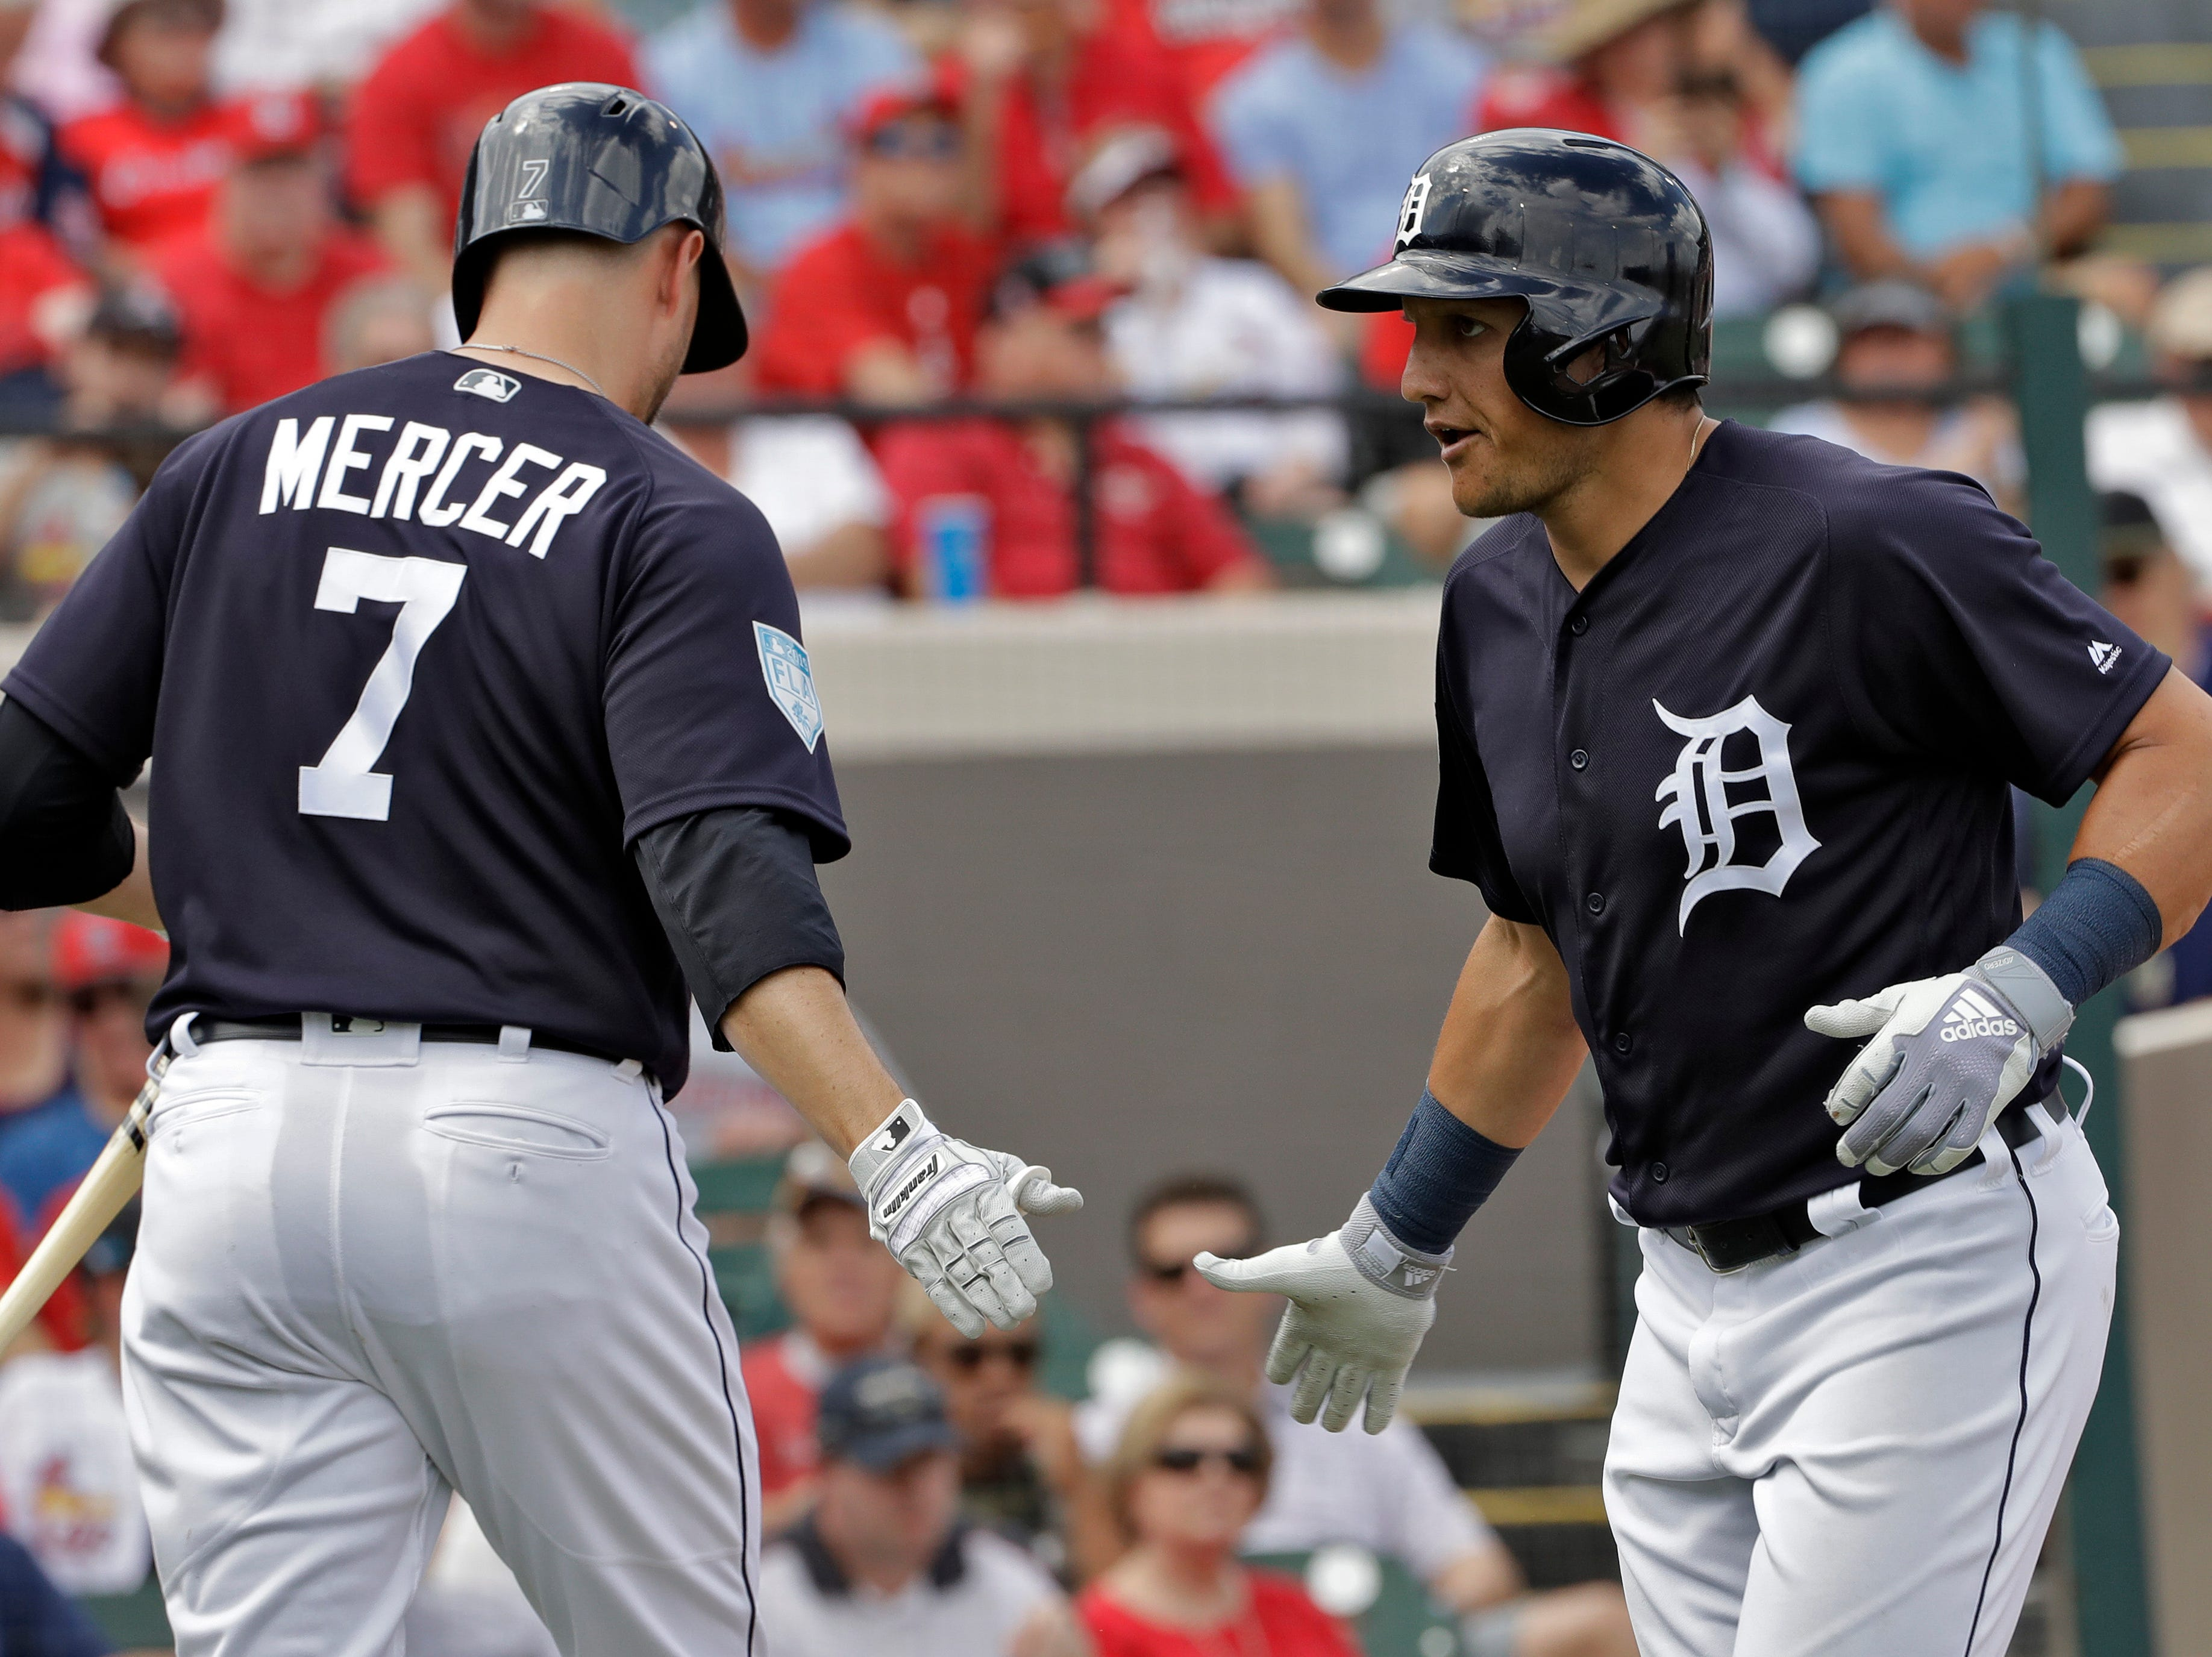 Detroit Tigers' Mikie Mahtook, right, celebrates with Jordy Mercer after hitting a home run off St. Louis Cardinals starting pitcher Adam Wainwright during the second inning.